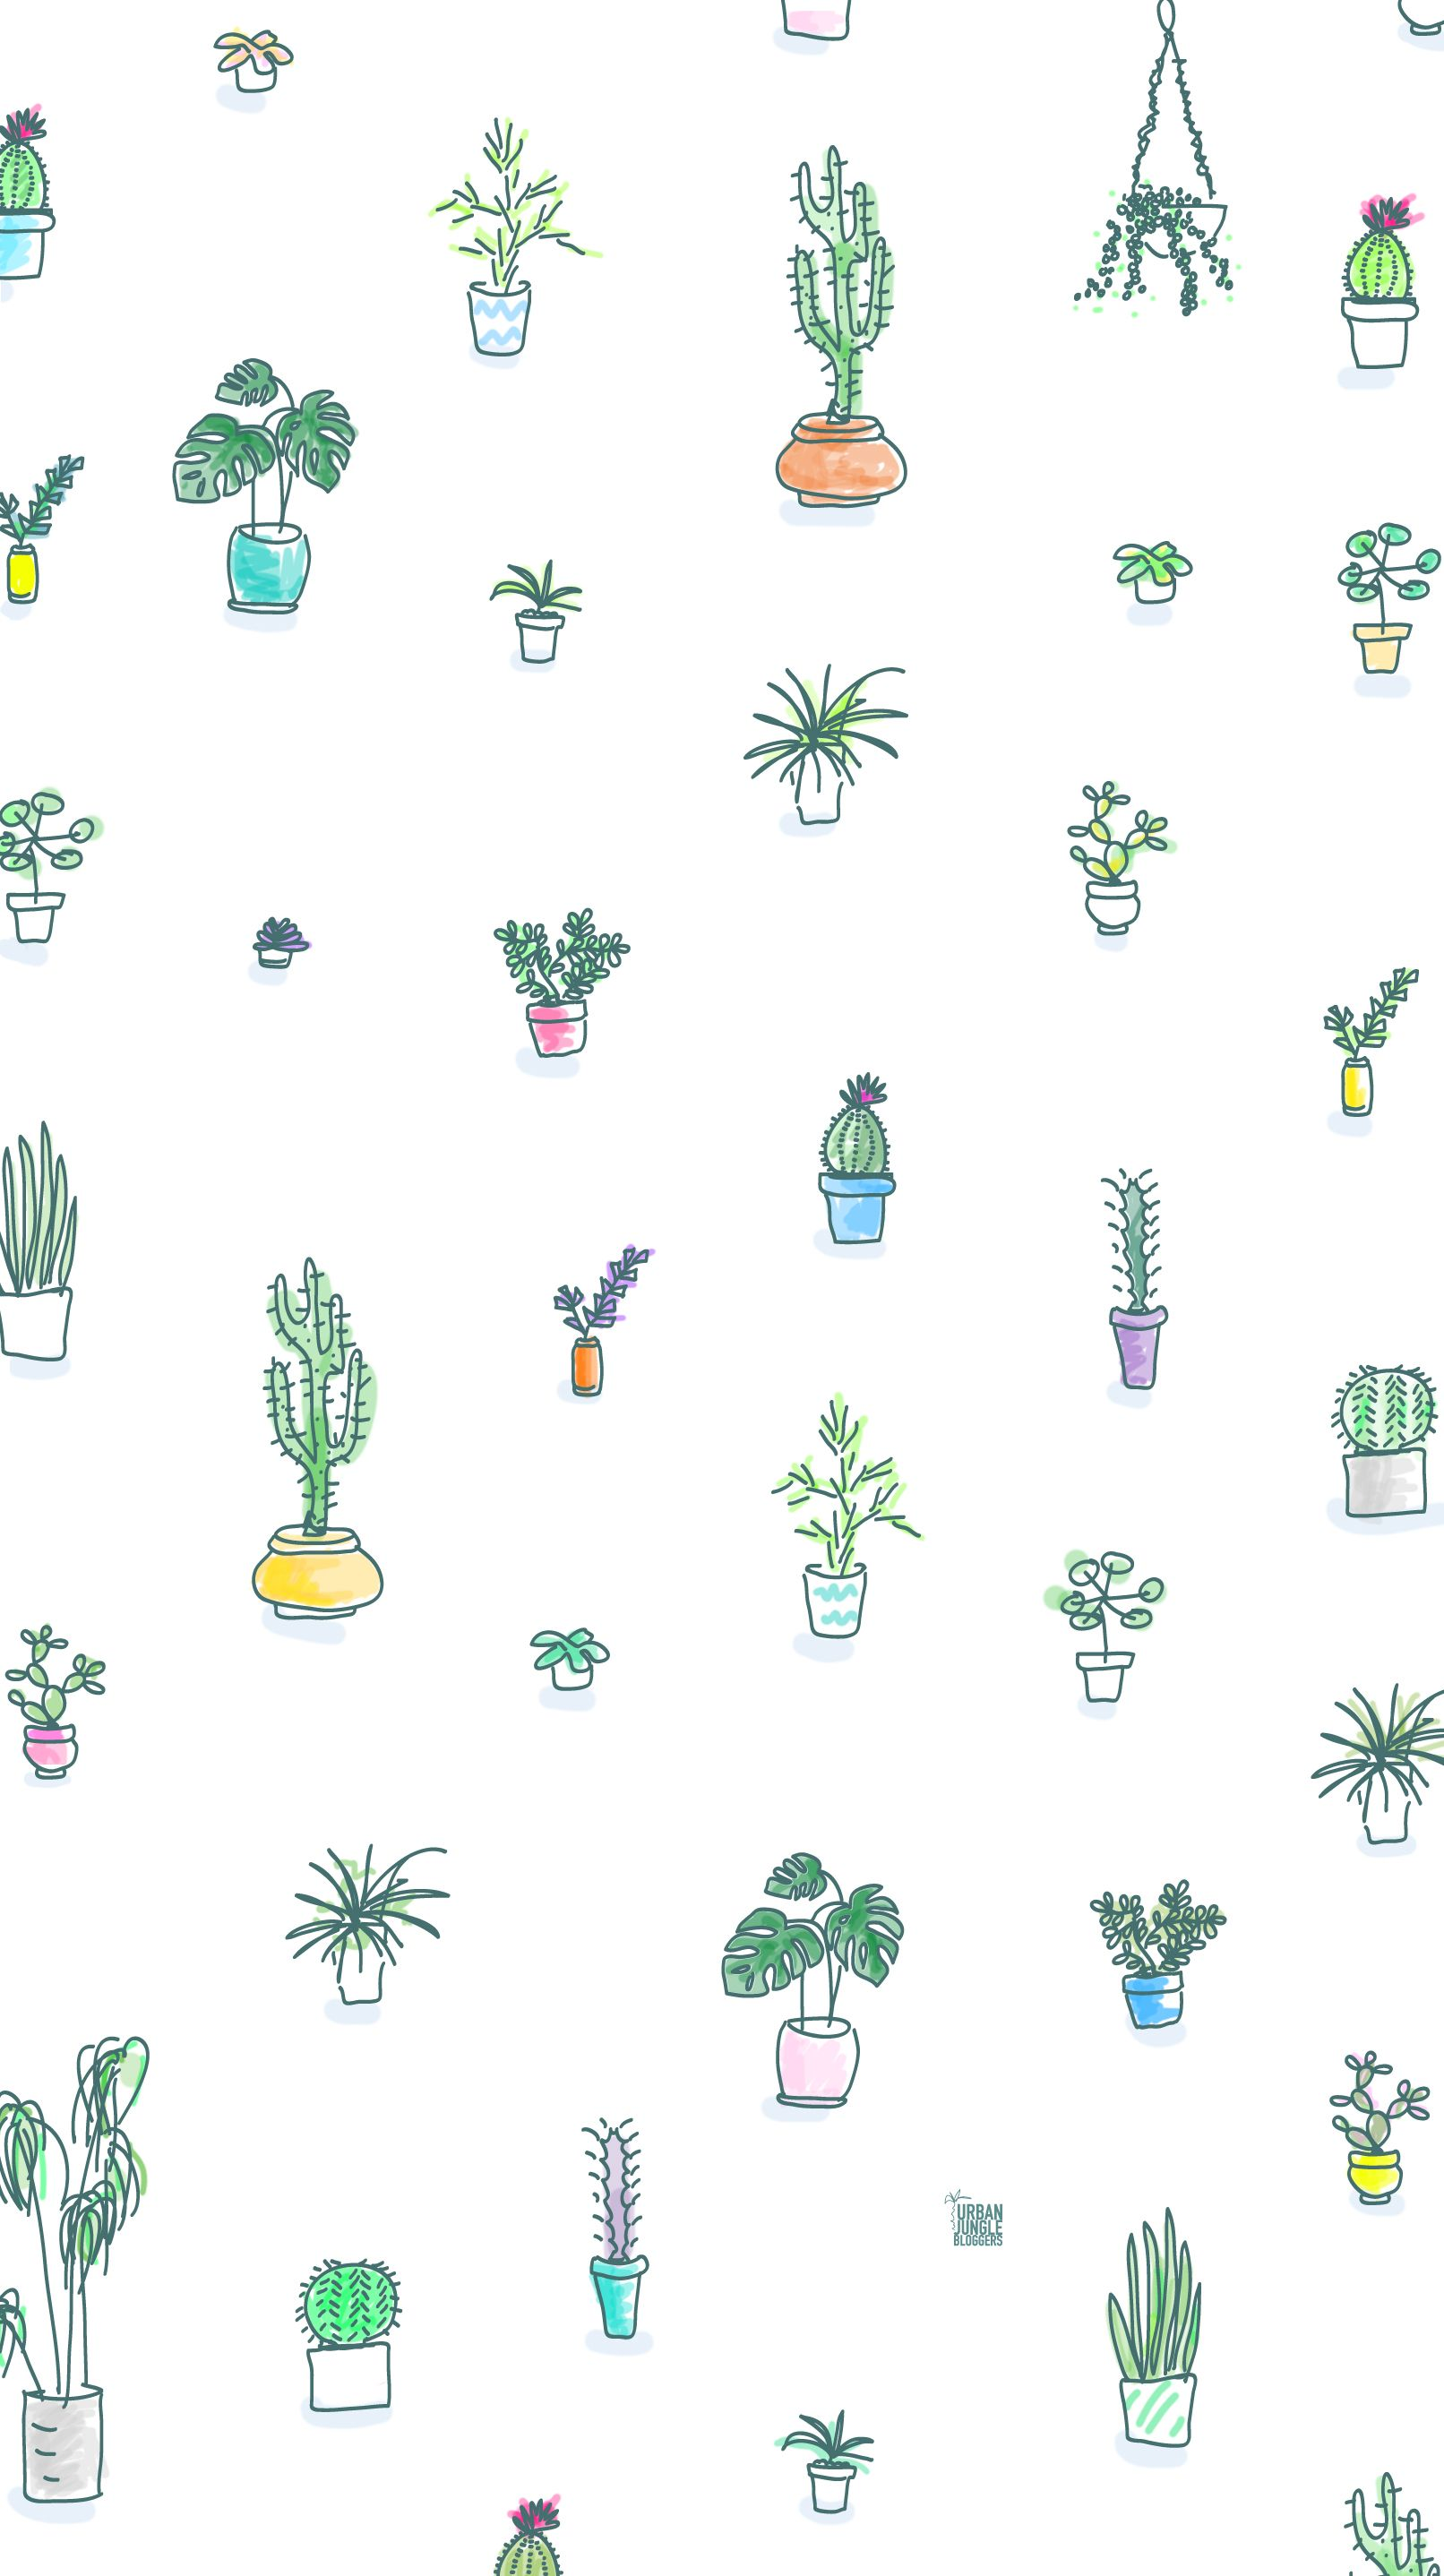 Oh my goshhhh! This iPhone wallpaper is perfect for spring